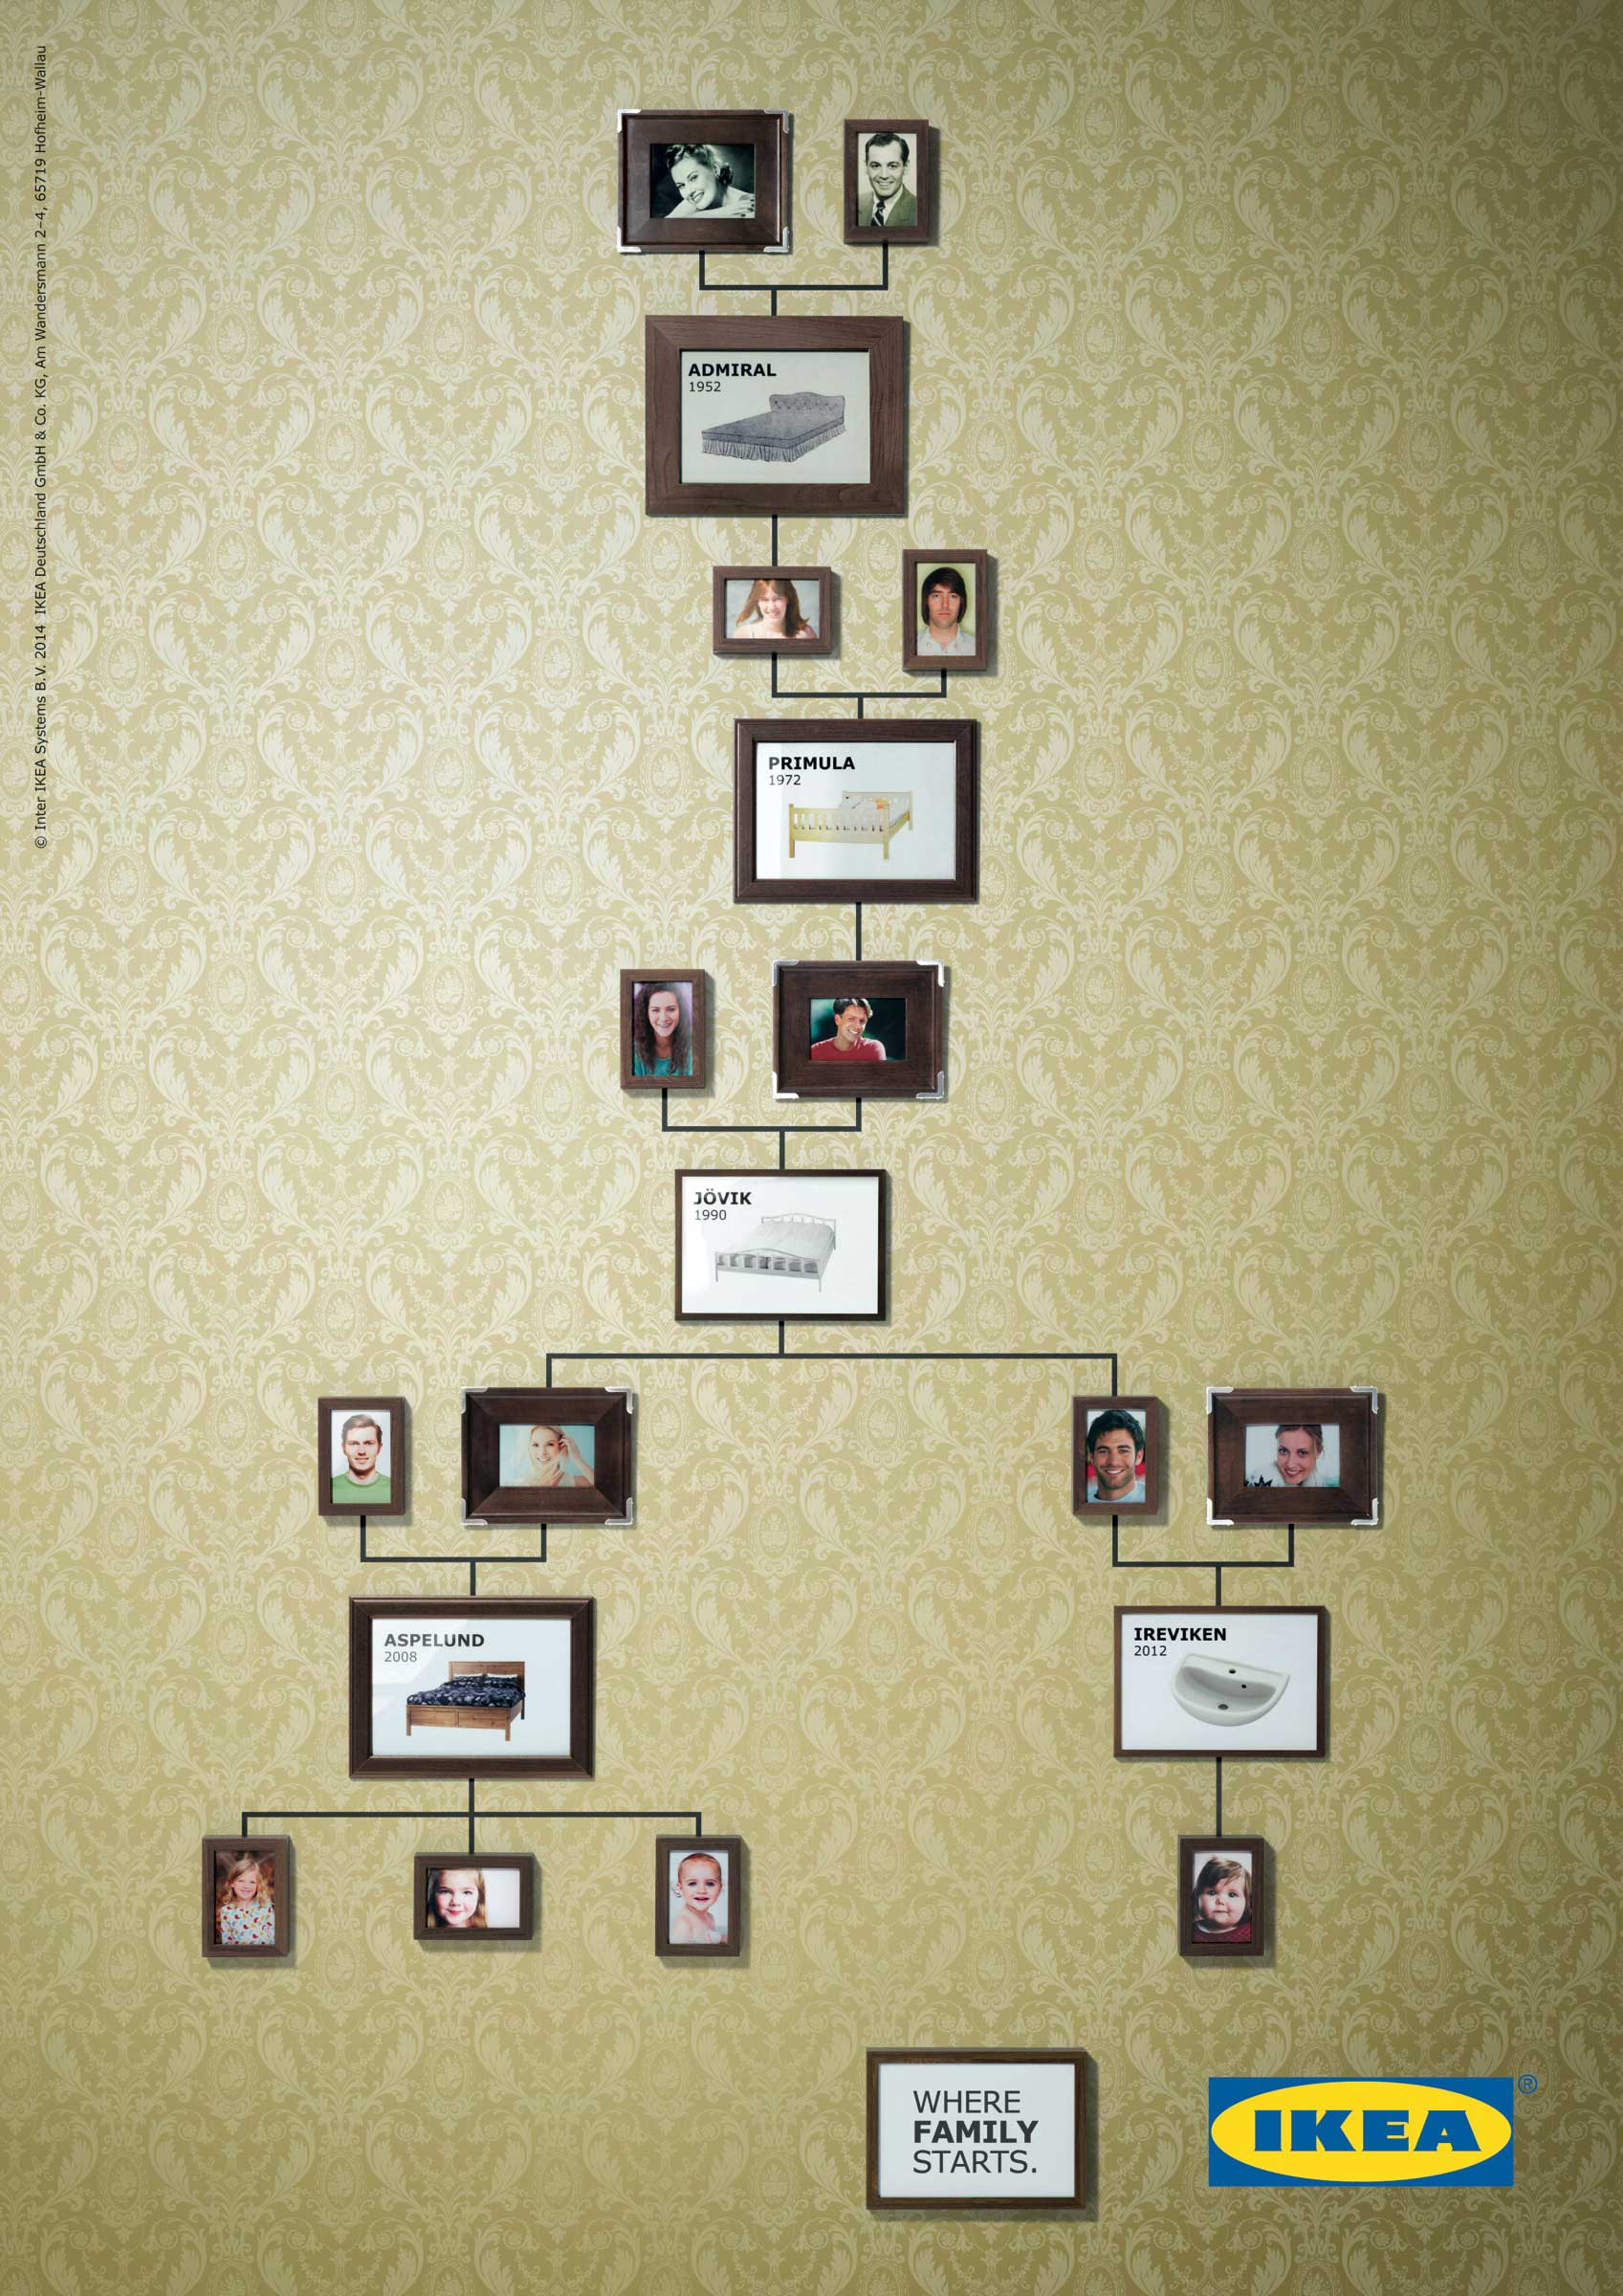 family_tree_creatividadenblanco (3)